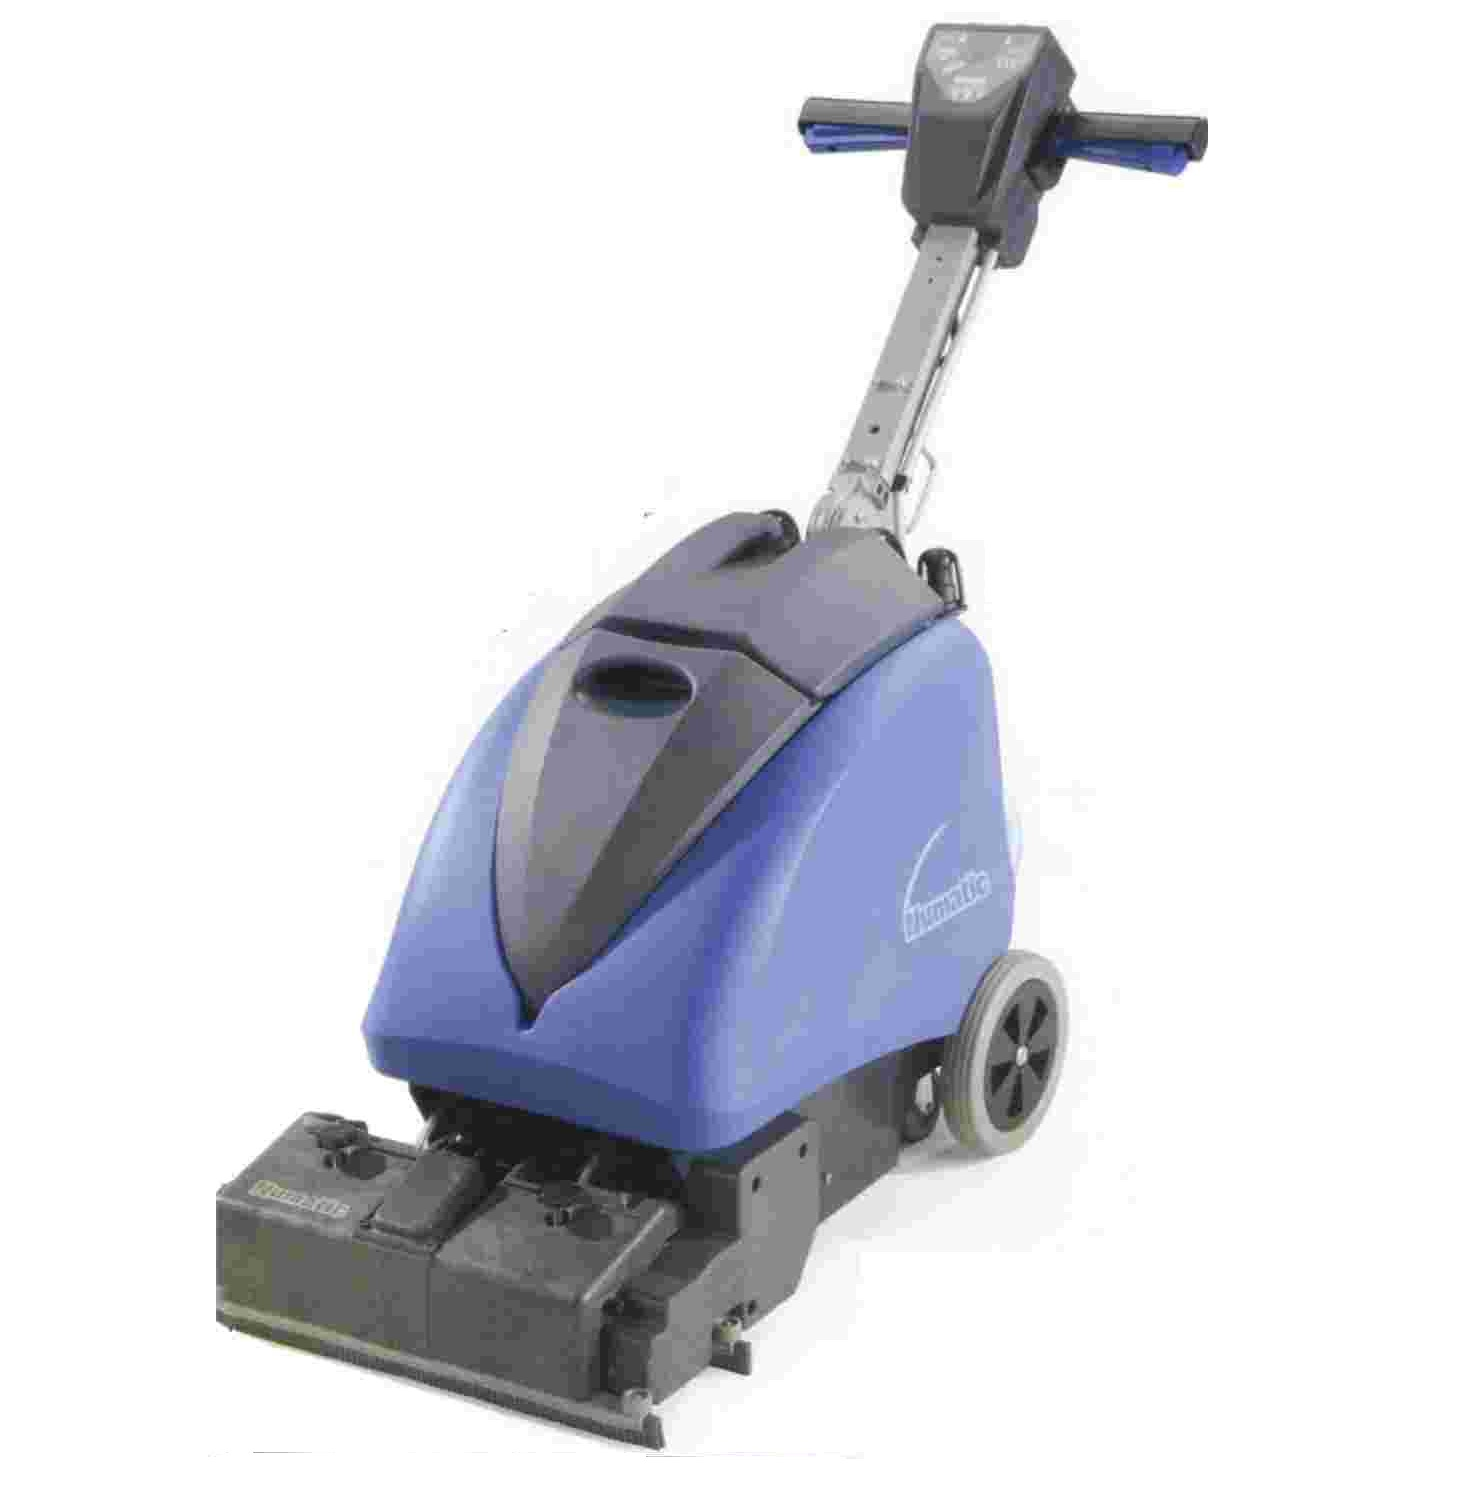 Numatic-Twintec-TTQ1535-Scrubber-Dryer---Mains